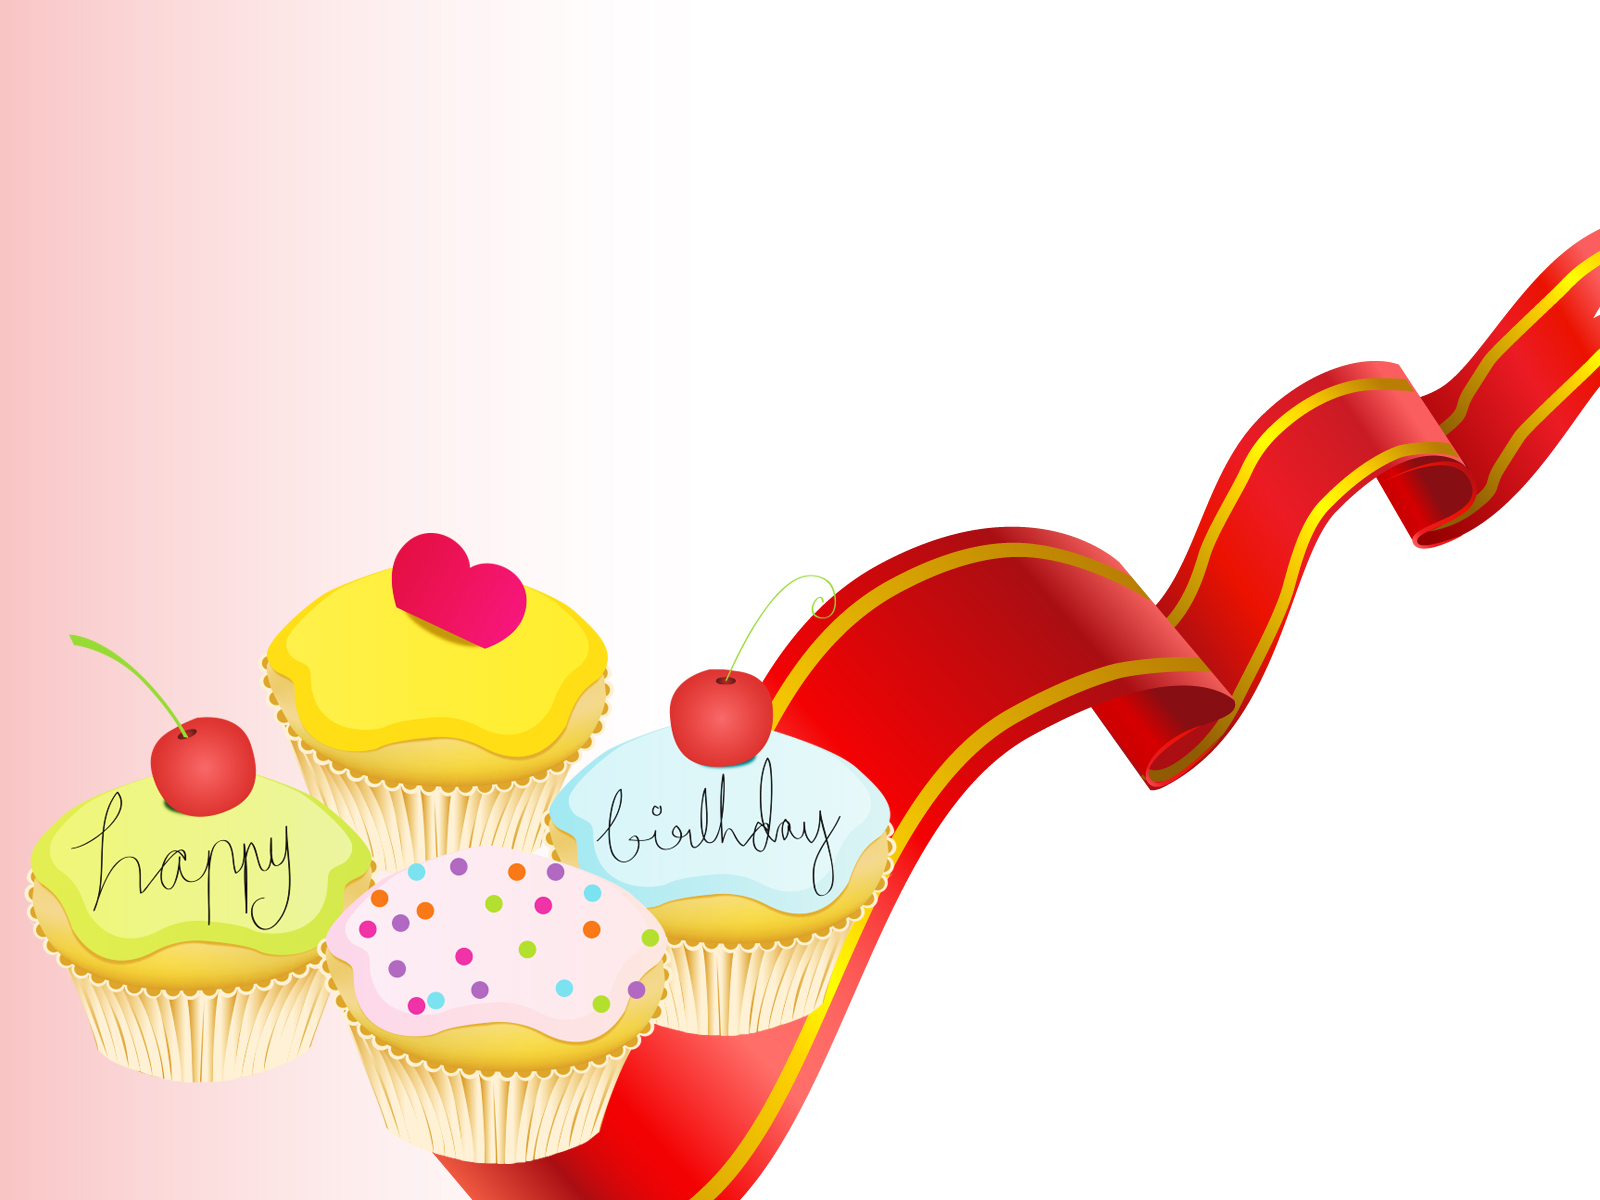 lovely little birthday cake backgrounds foods drinks templates free ppt grounds and powerpoint. Black Bedroom Furniture Sets. Home Design Ideas